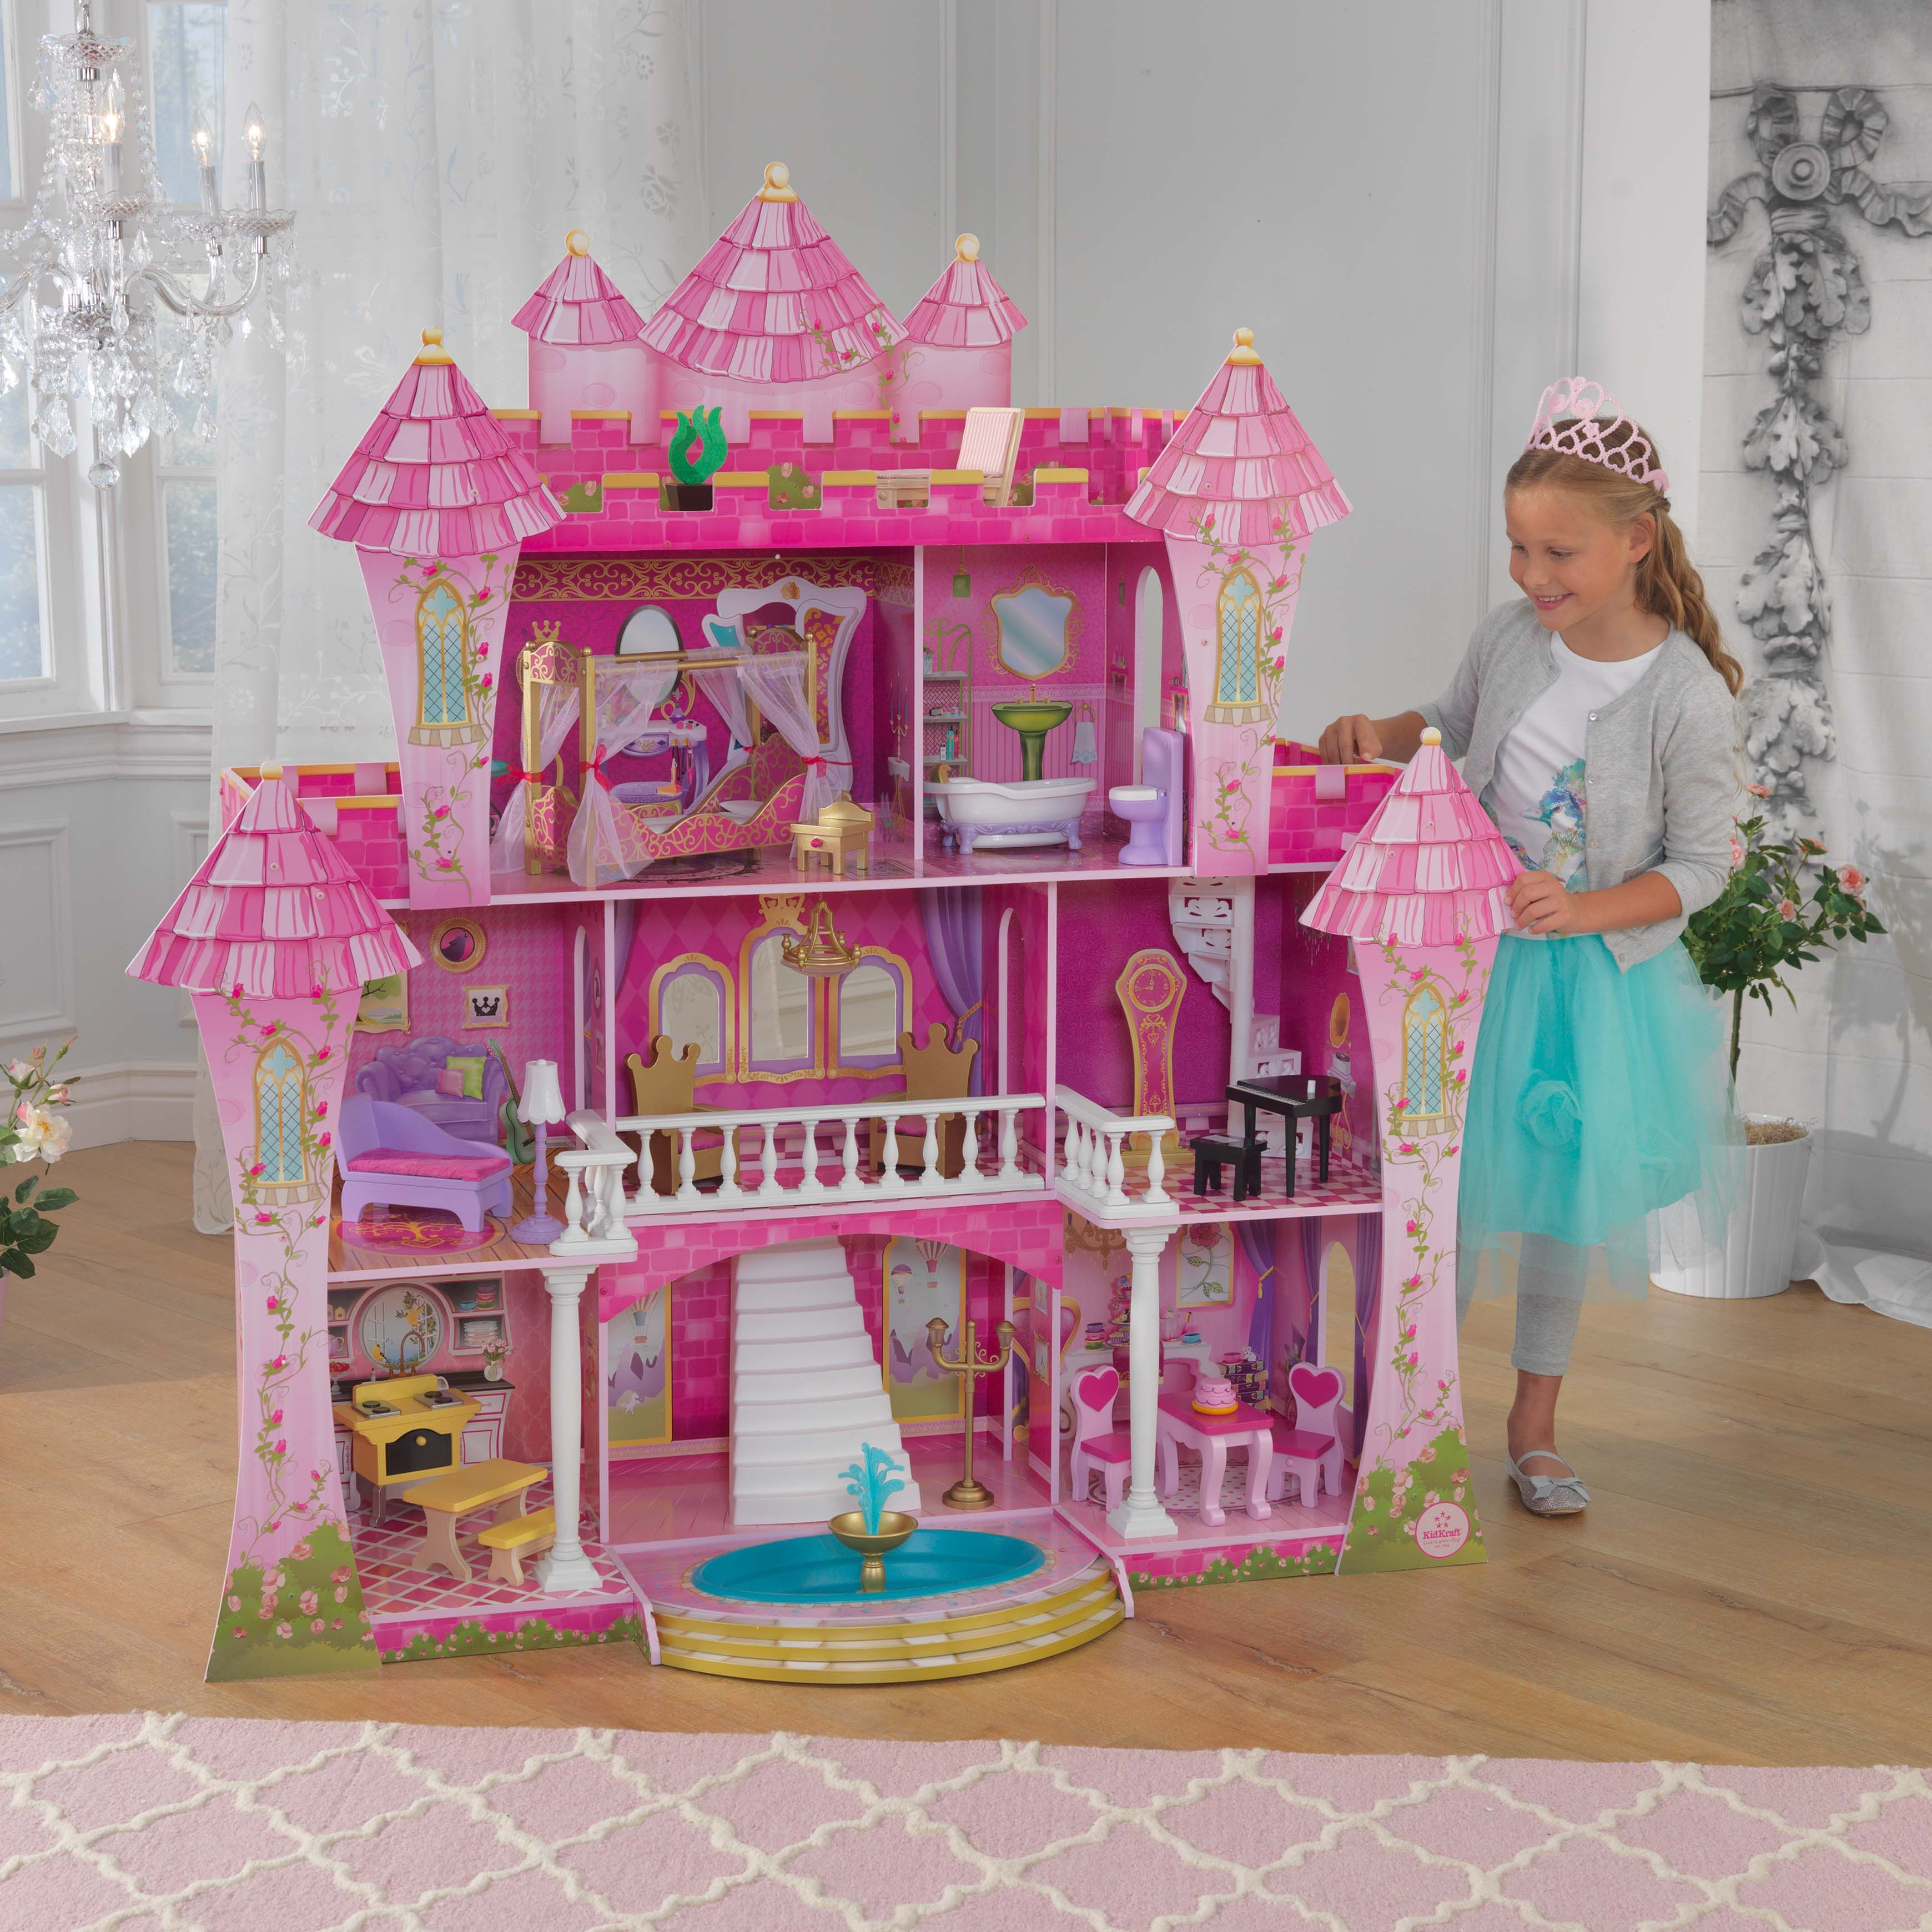 KidKraft Far Far Away Dollhouse Doll house, Wooden